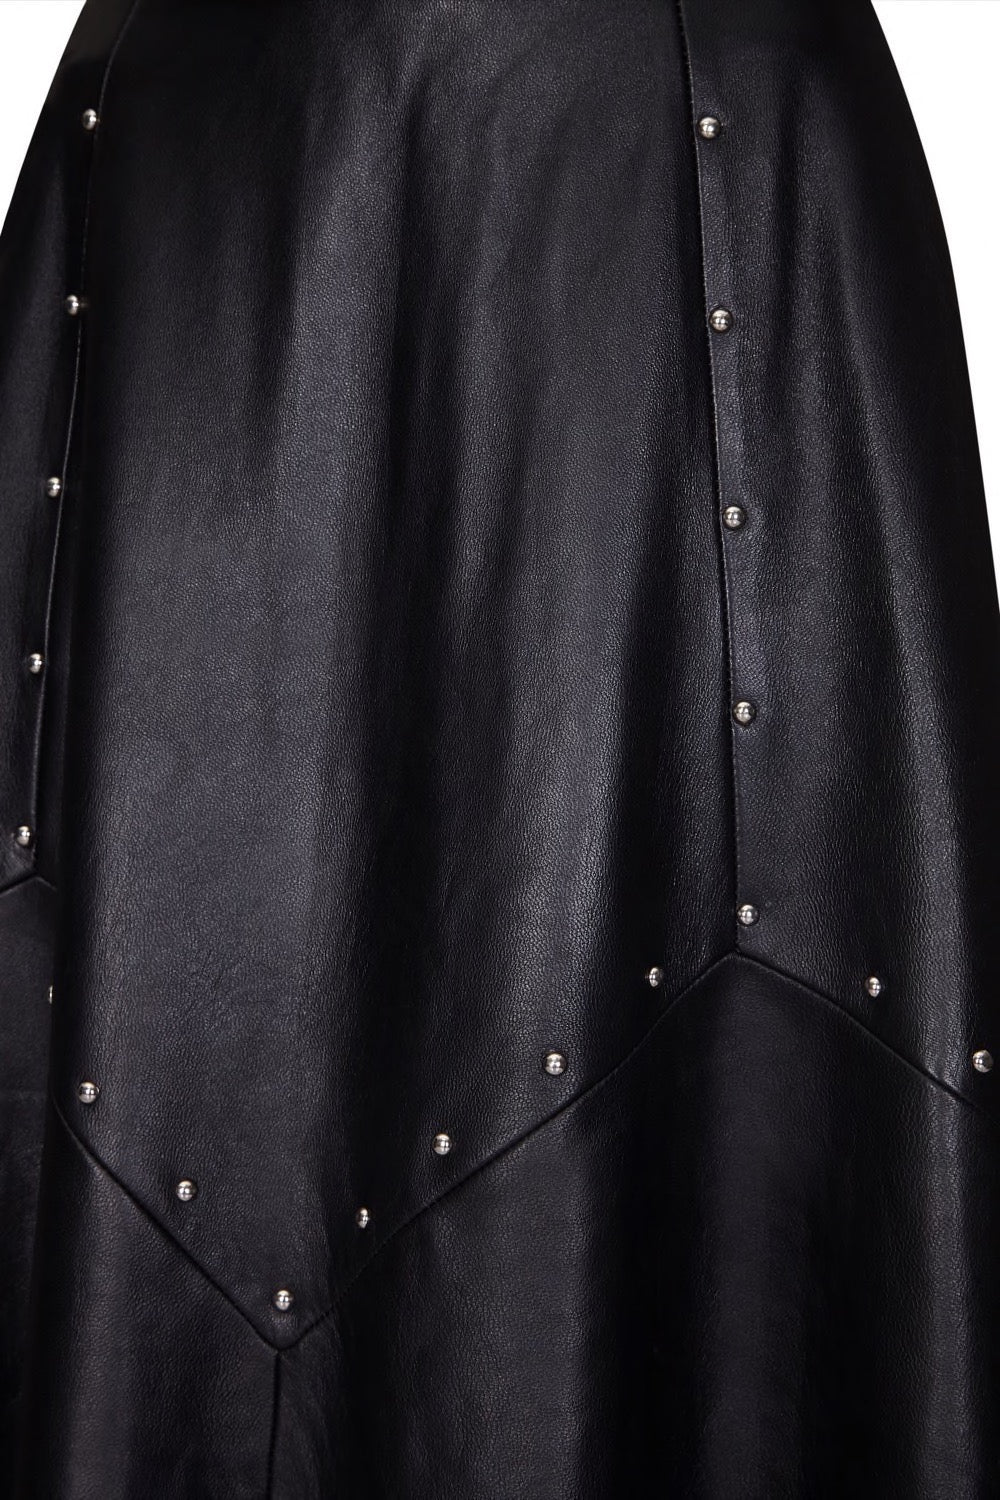 studded leather Maxi | Black leather skirt | Leather skirt | Pencil Skirt | Black Pencil Skirt | Maxi Skirt | Maxi